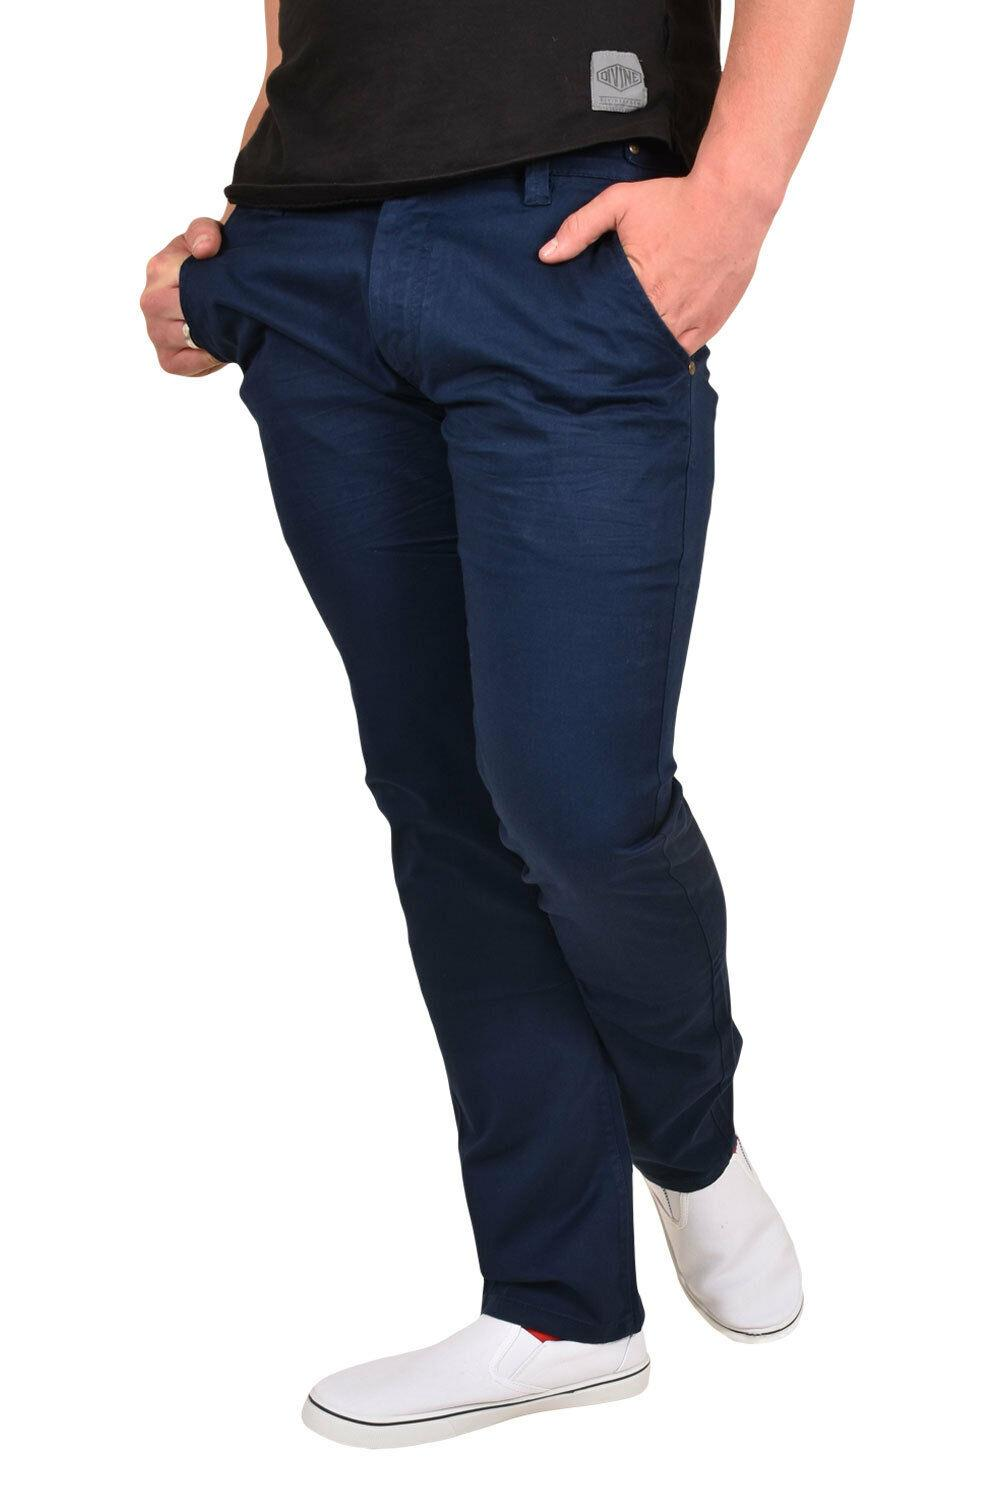 New-Mens-Designer-Jacksouth-Chino-Regular-Fit-Stretch-Cotton-Rich-Twill-Trousers thumbnail 22